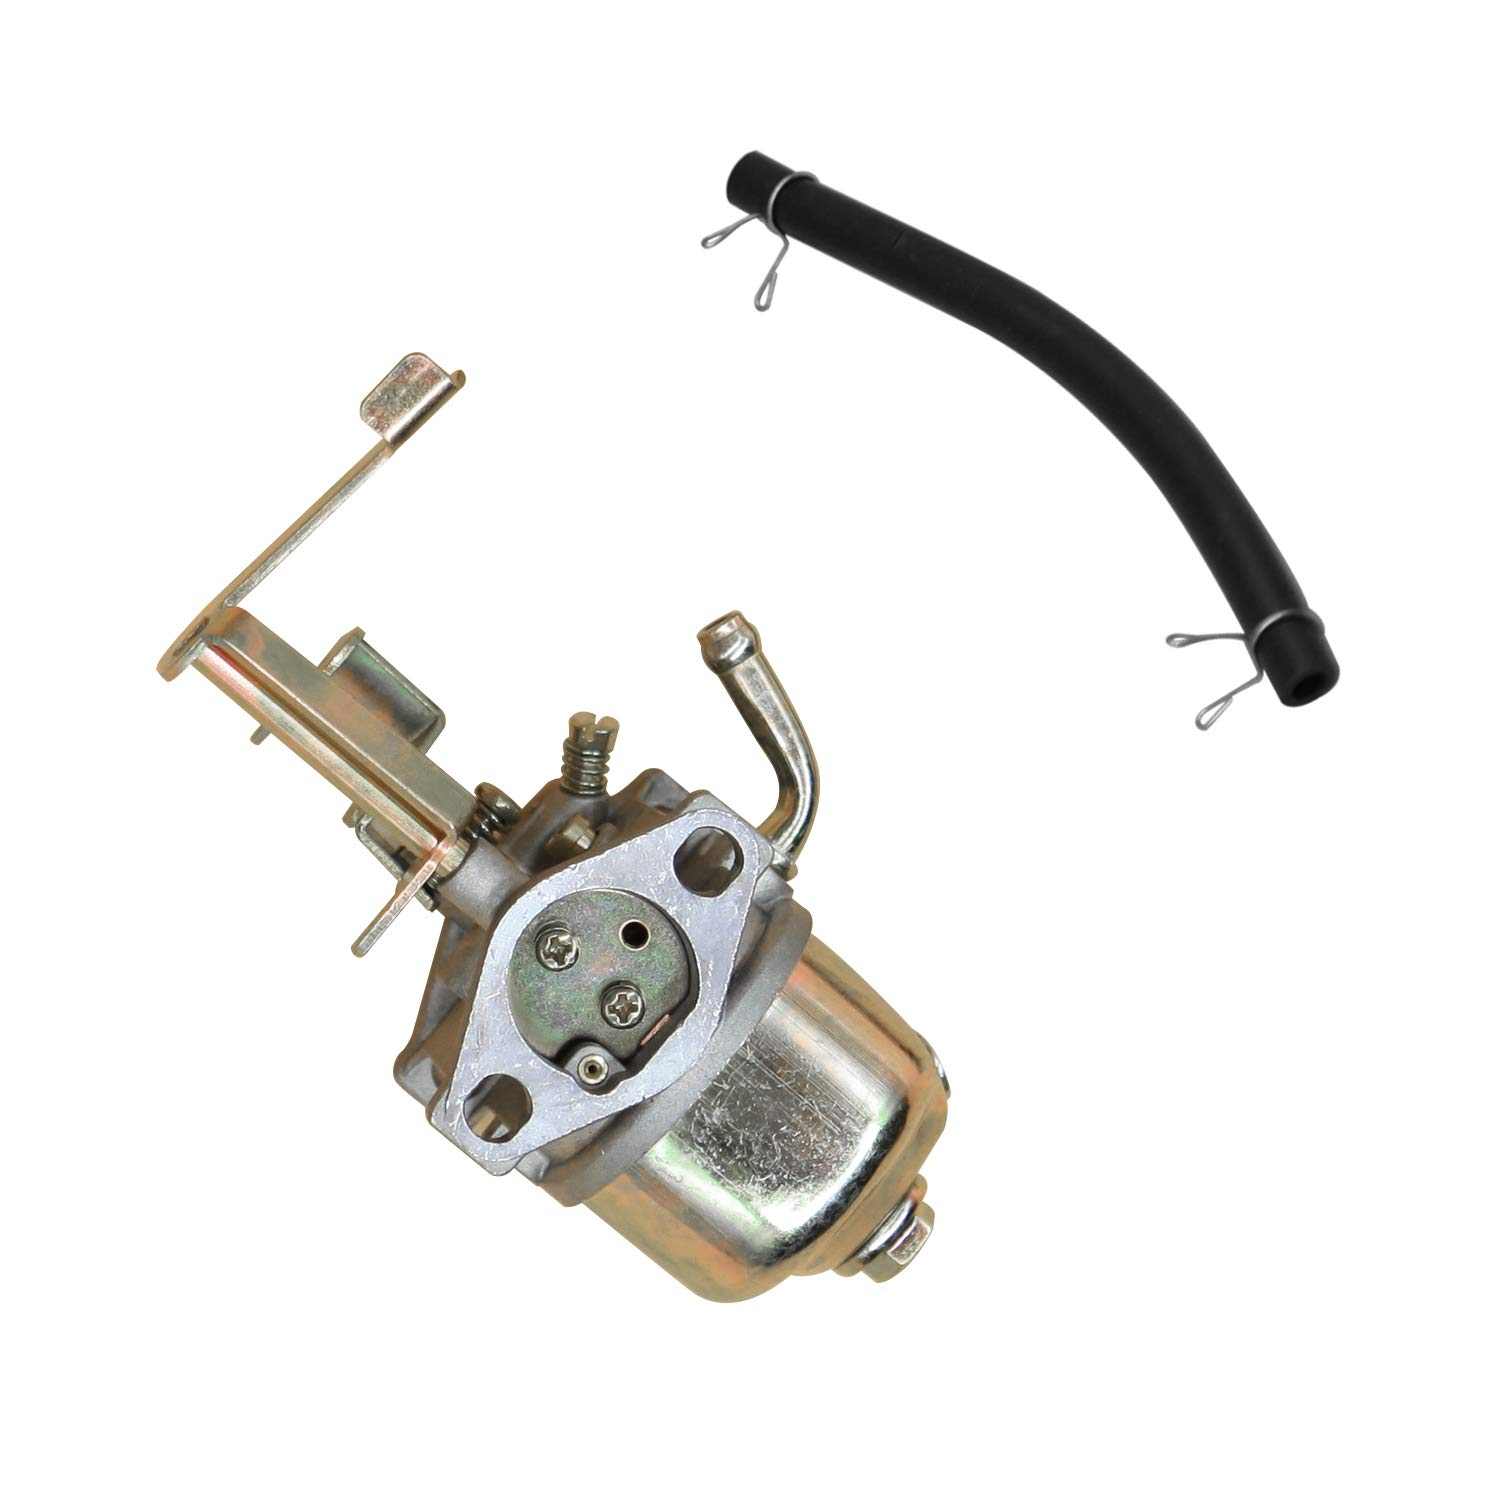 Weelparz Carburetor GEN154A Compatible King Engine Milwaukee Mall Gasoline Ranking integrated 1st place with